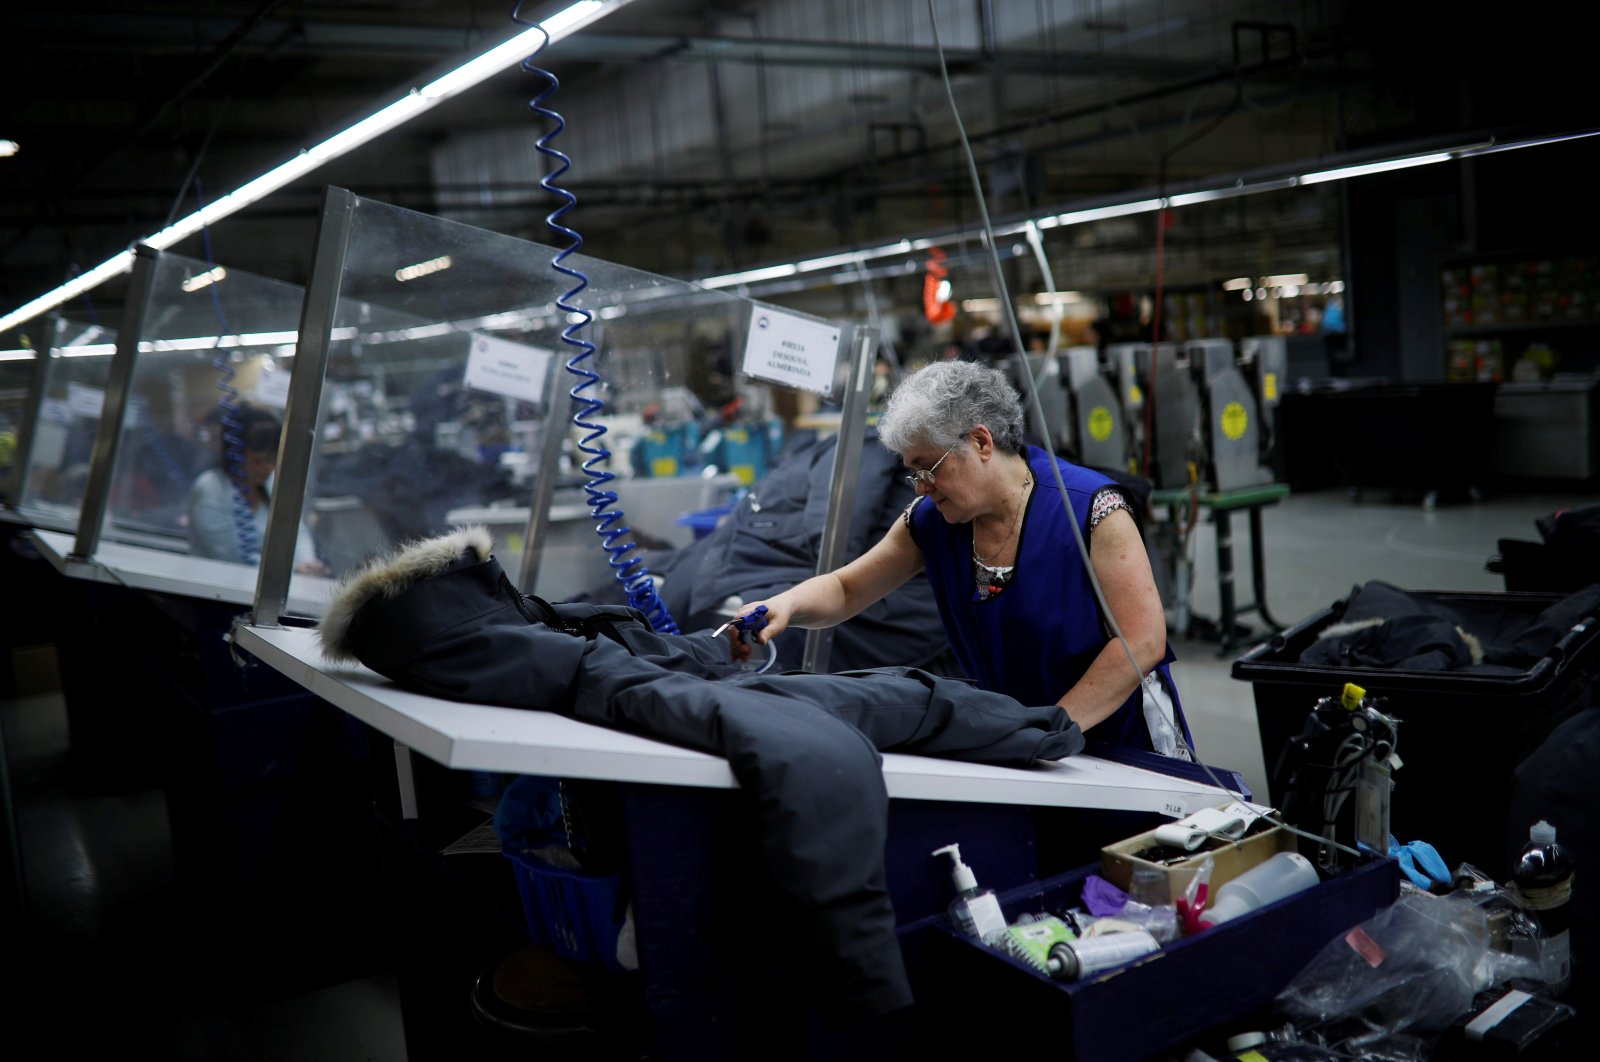 Workers make jackets at the Canada Goose factory in Toronto, Ontario, Canada, February 23, 2018. (Reuters Photo)